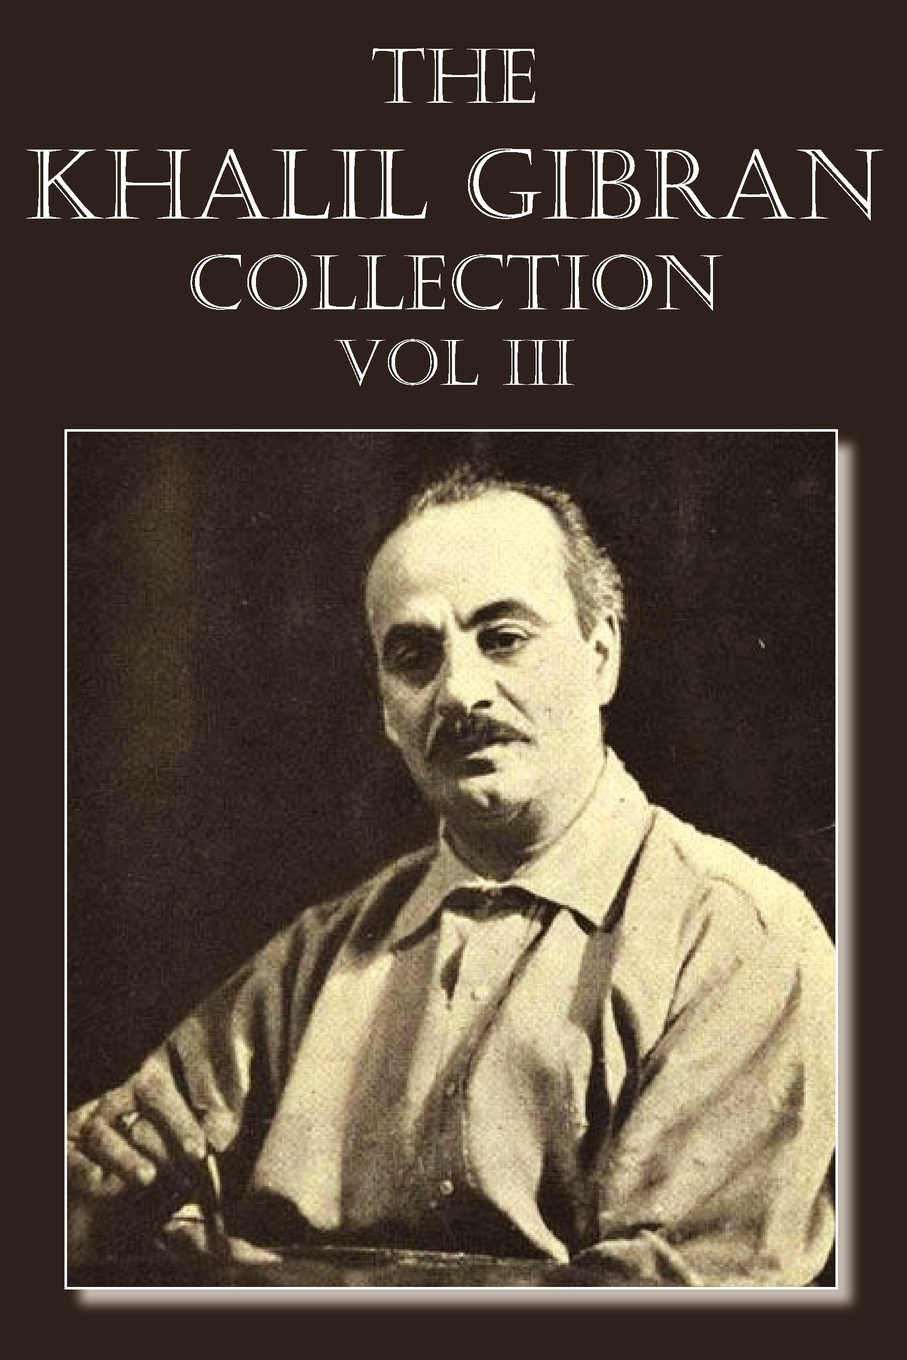 Kahlil Gibran The Khalil Gibran Collection Volume III kahlil gibran the forerunner his parables and poems